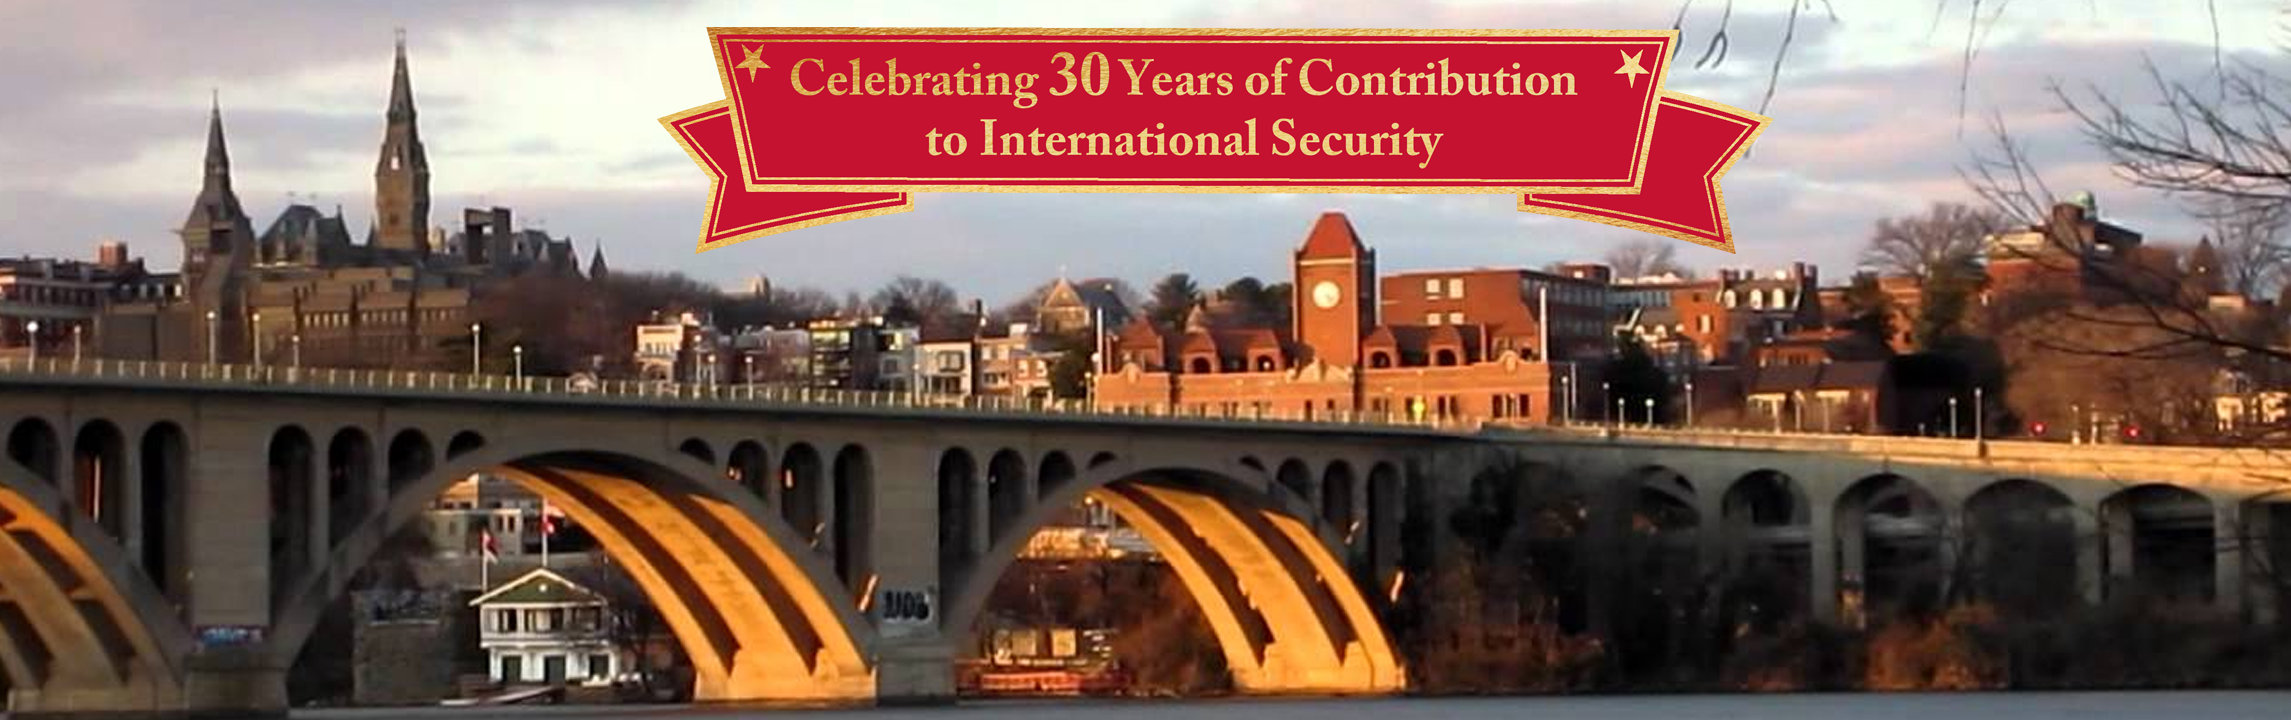 Potomac Foundation Celebrating 30 Years of contribution to International Security